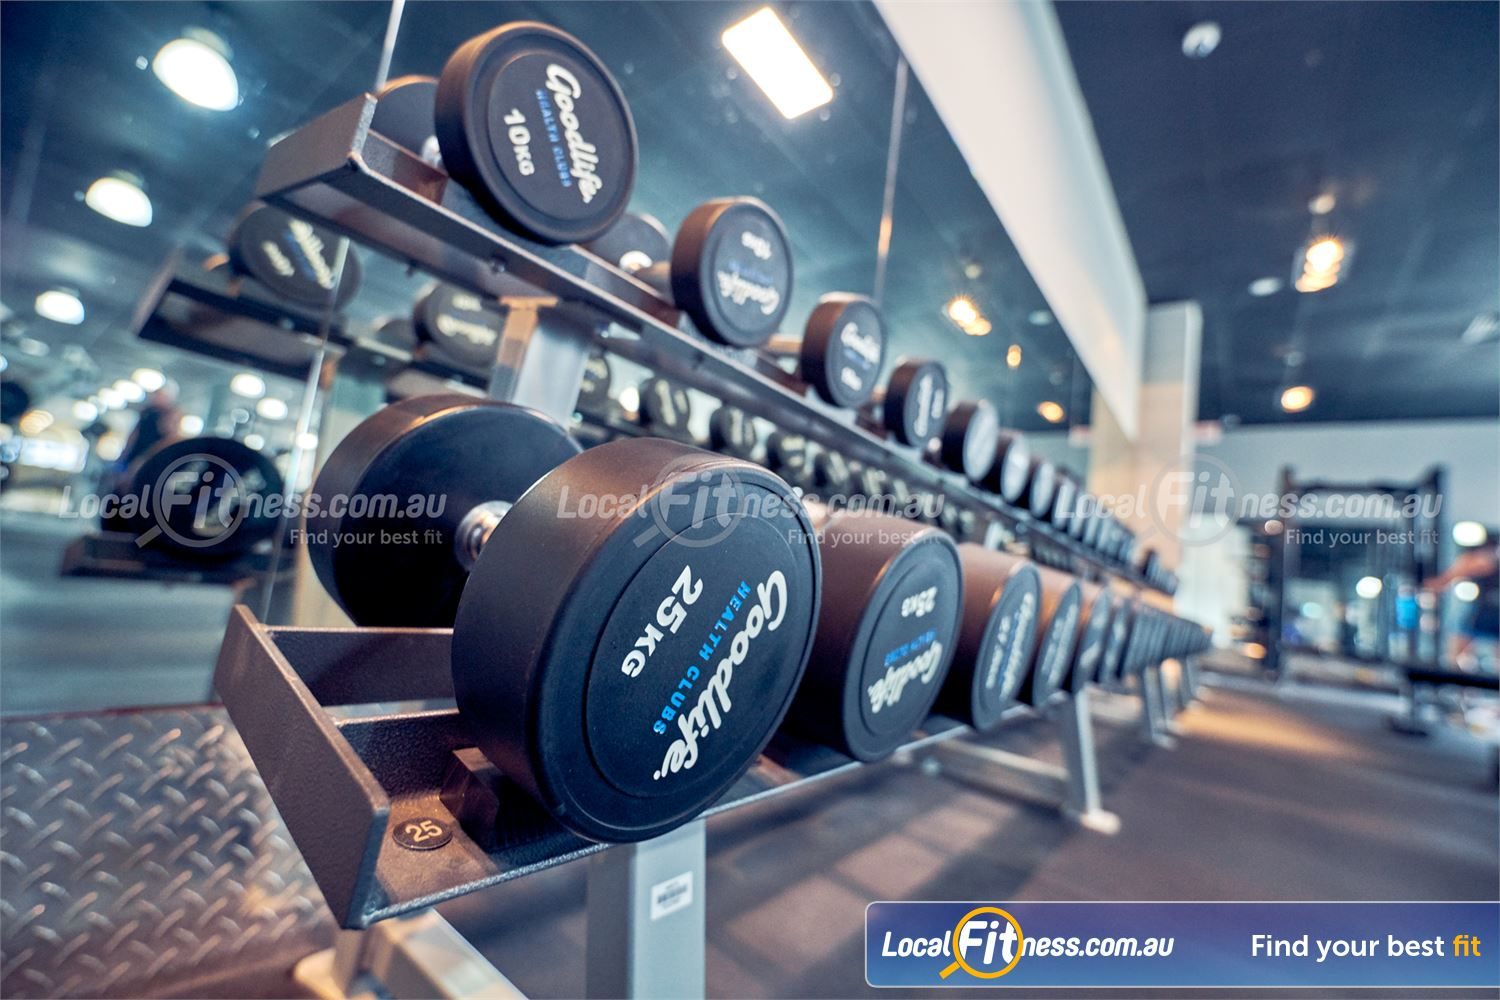 Goodlife Health Clubs Knox City Near Scoresby Full range of dumbbells catering for beginners to advanced.